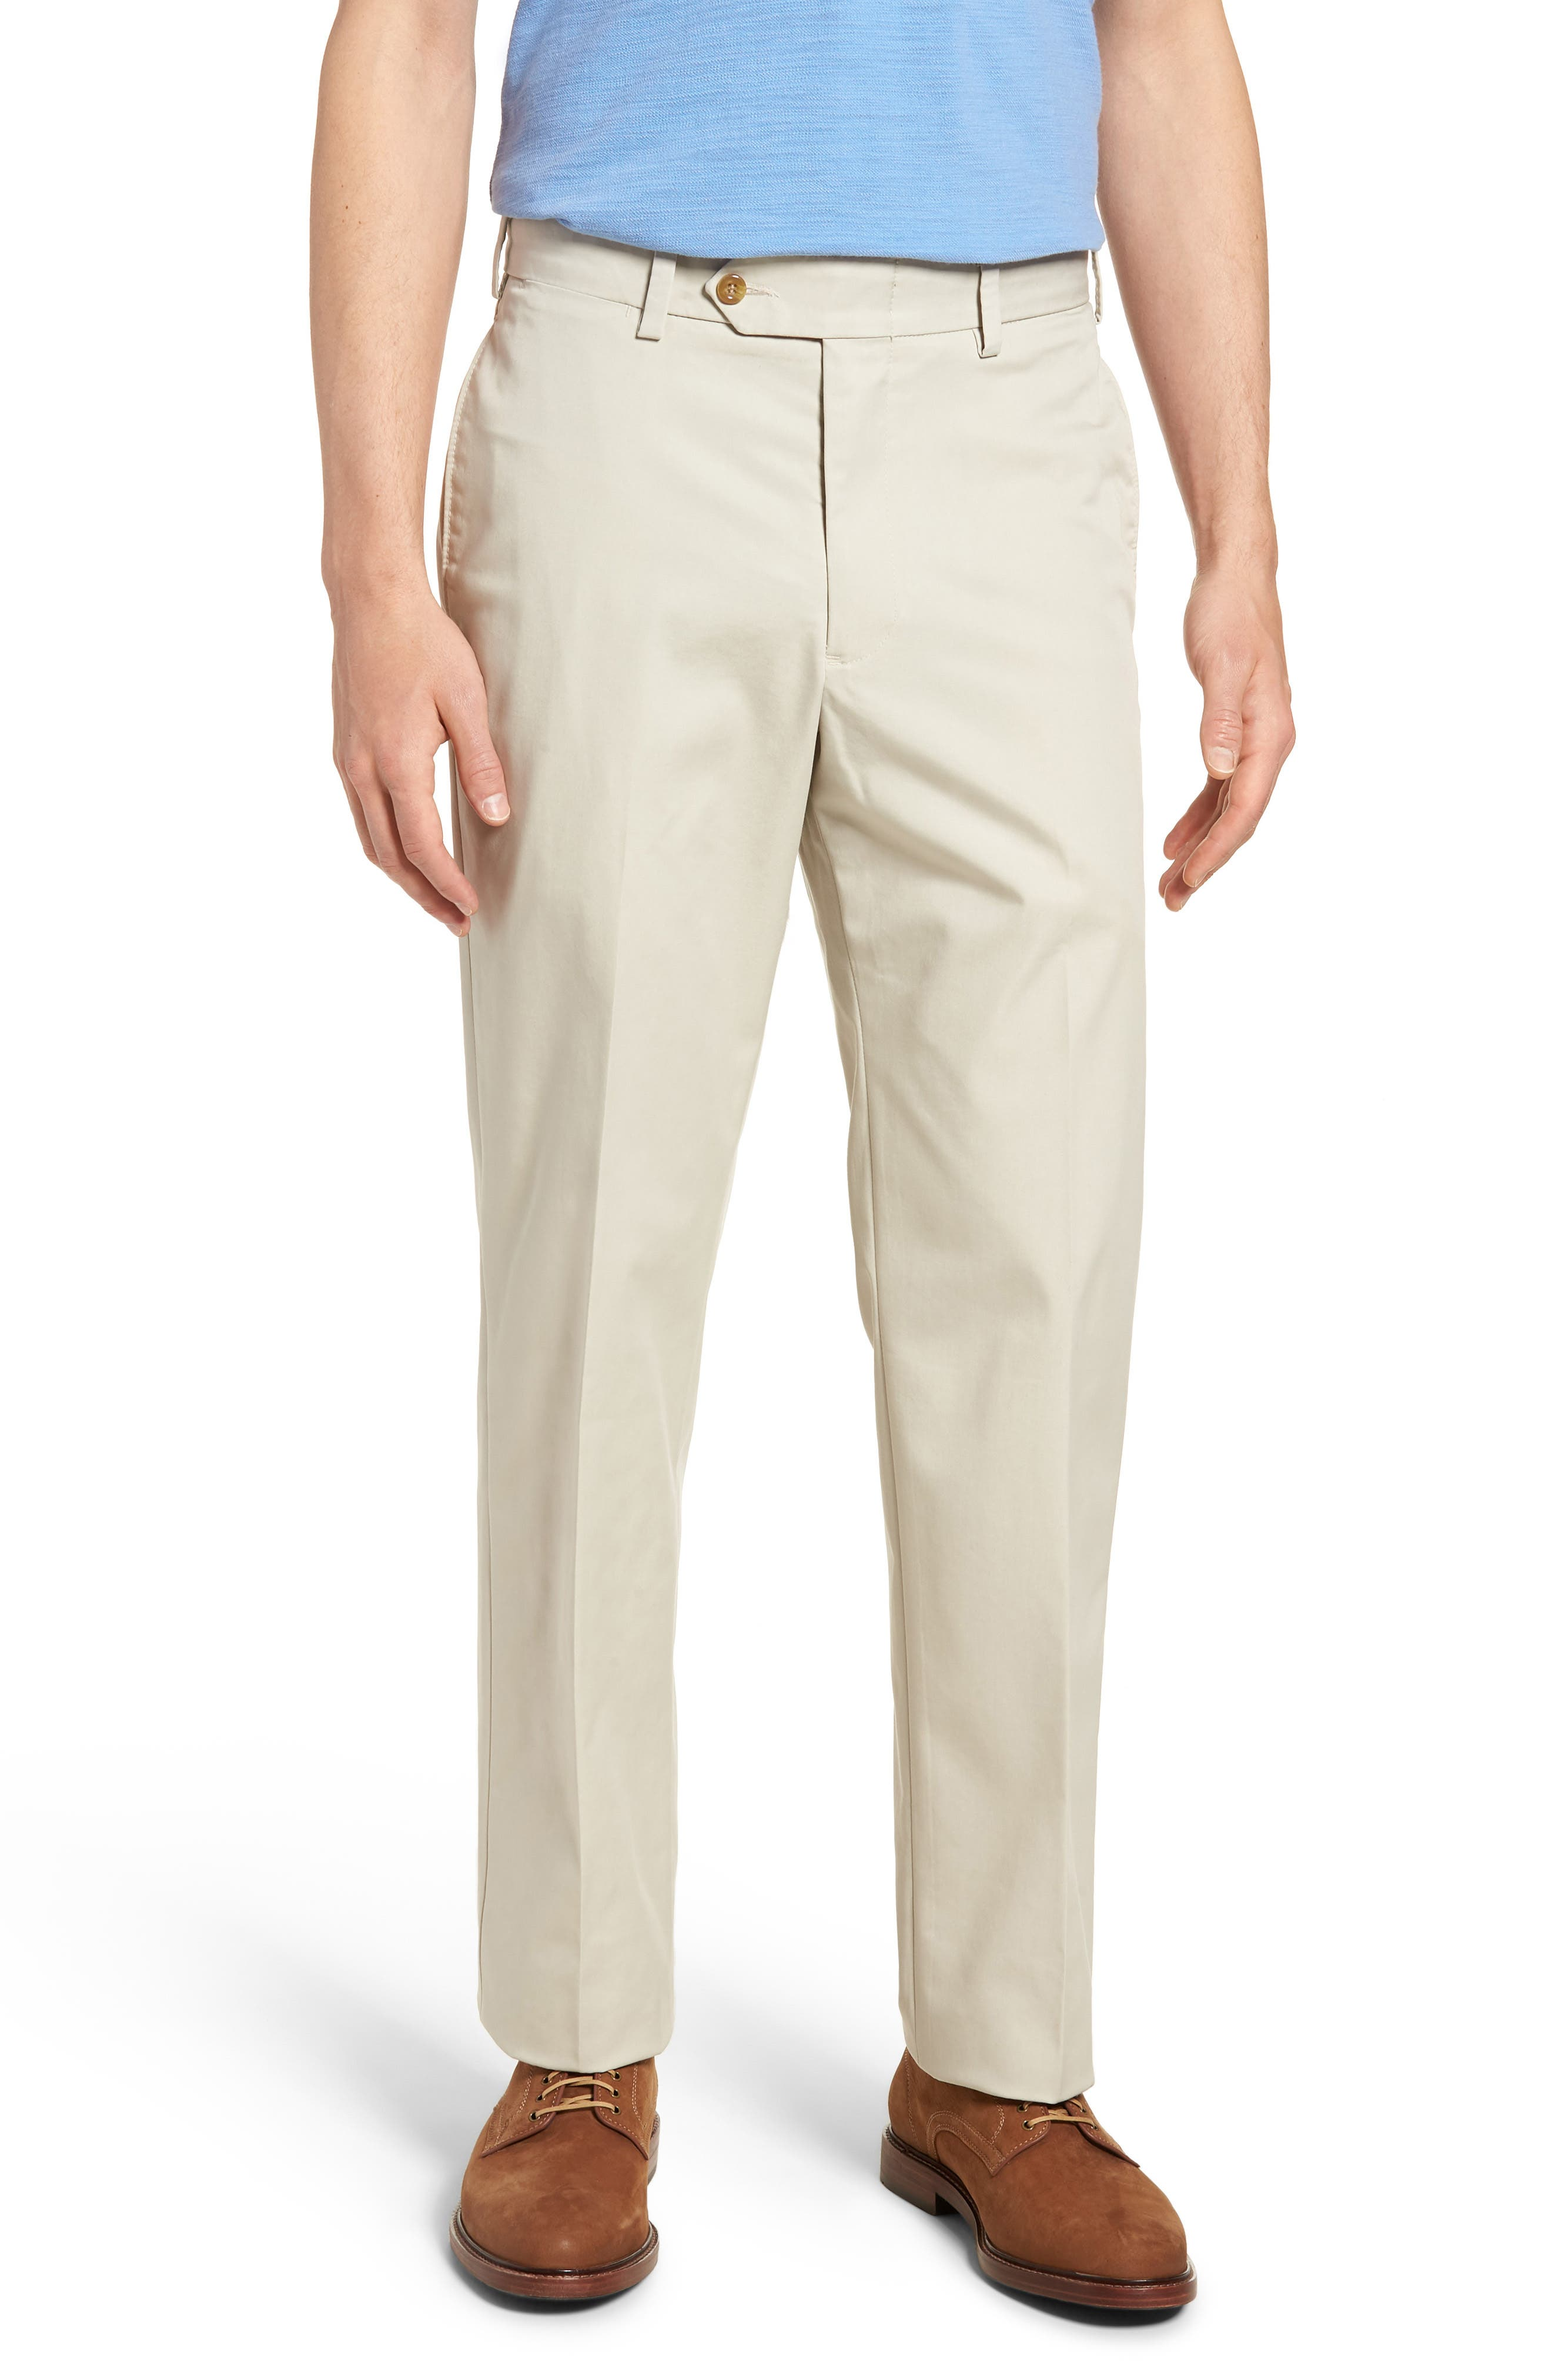 M2 Classic Fit Flat Front Travel Twill Pants,                         Main,                         color, CEMENT